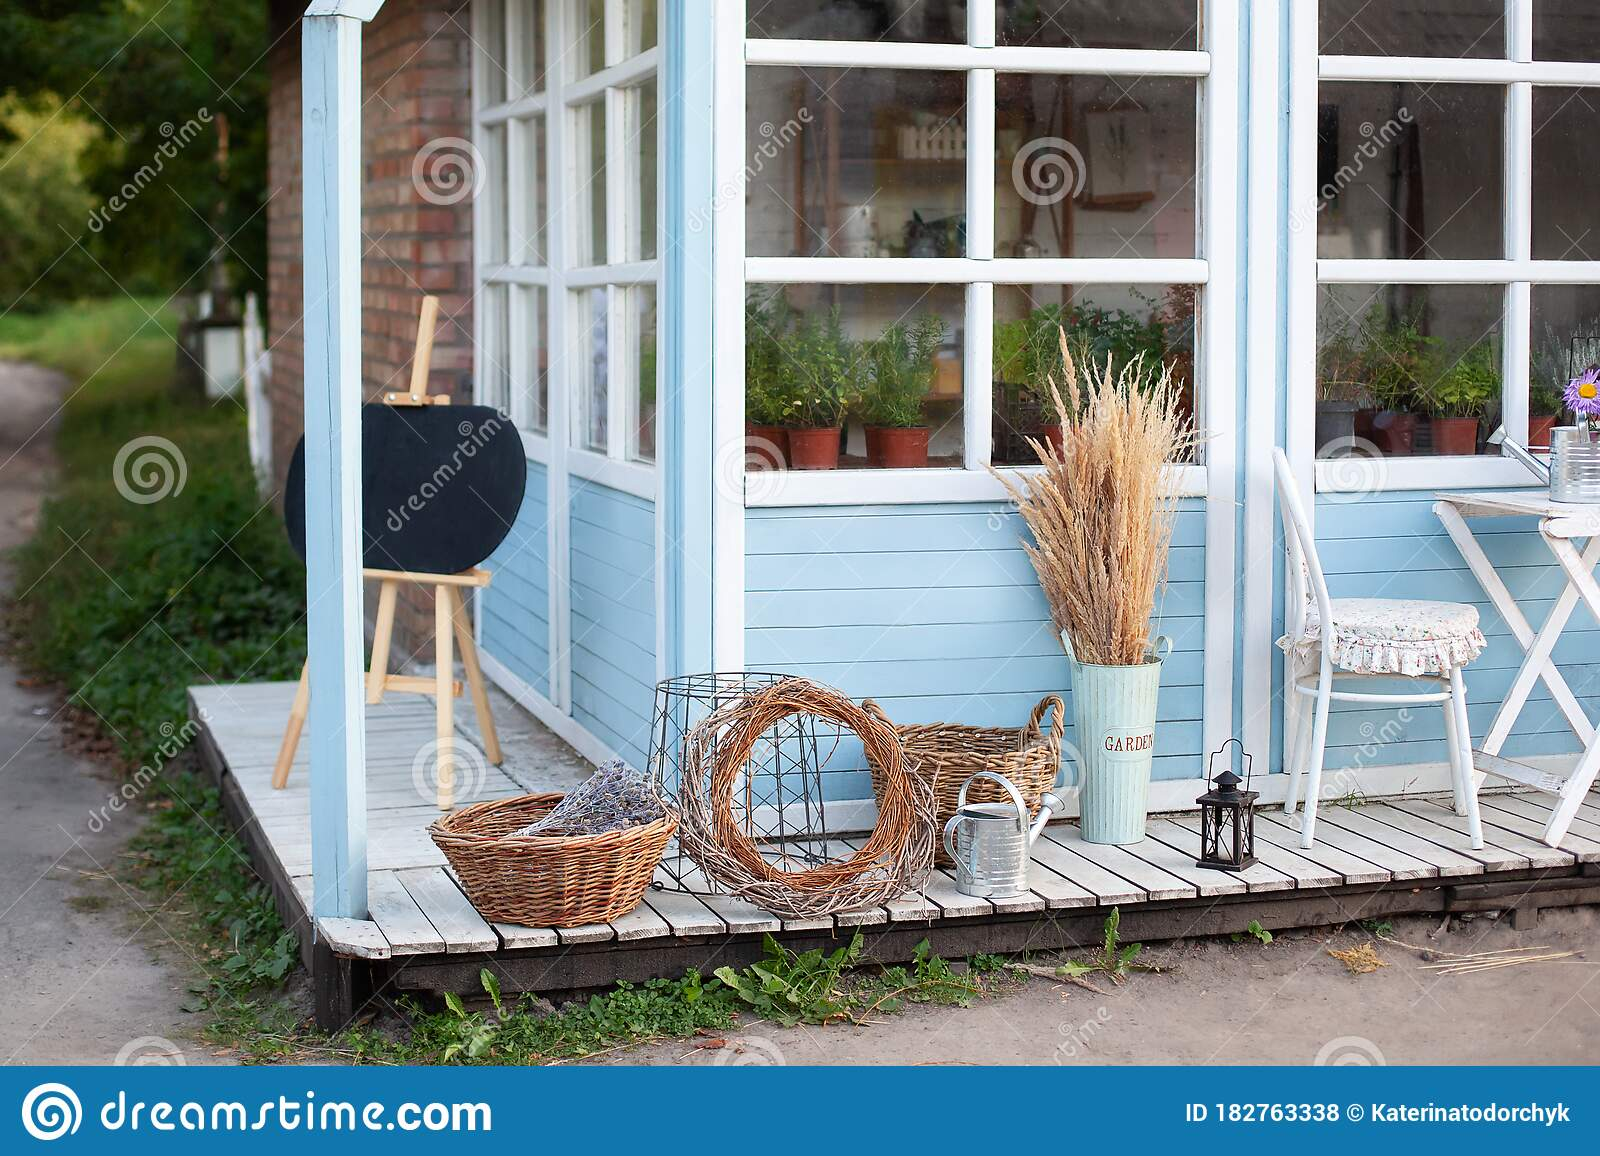 Wicker Baskets Next To Garden Equipment By Wall Of House. Decor Of